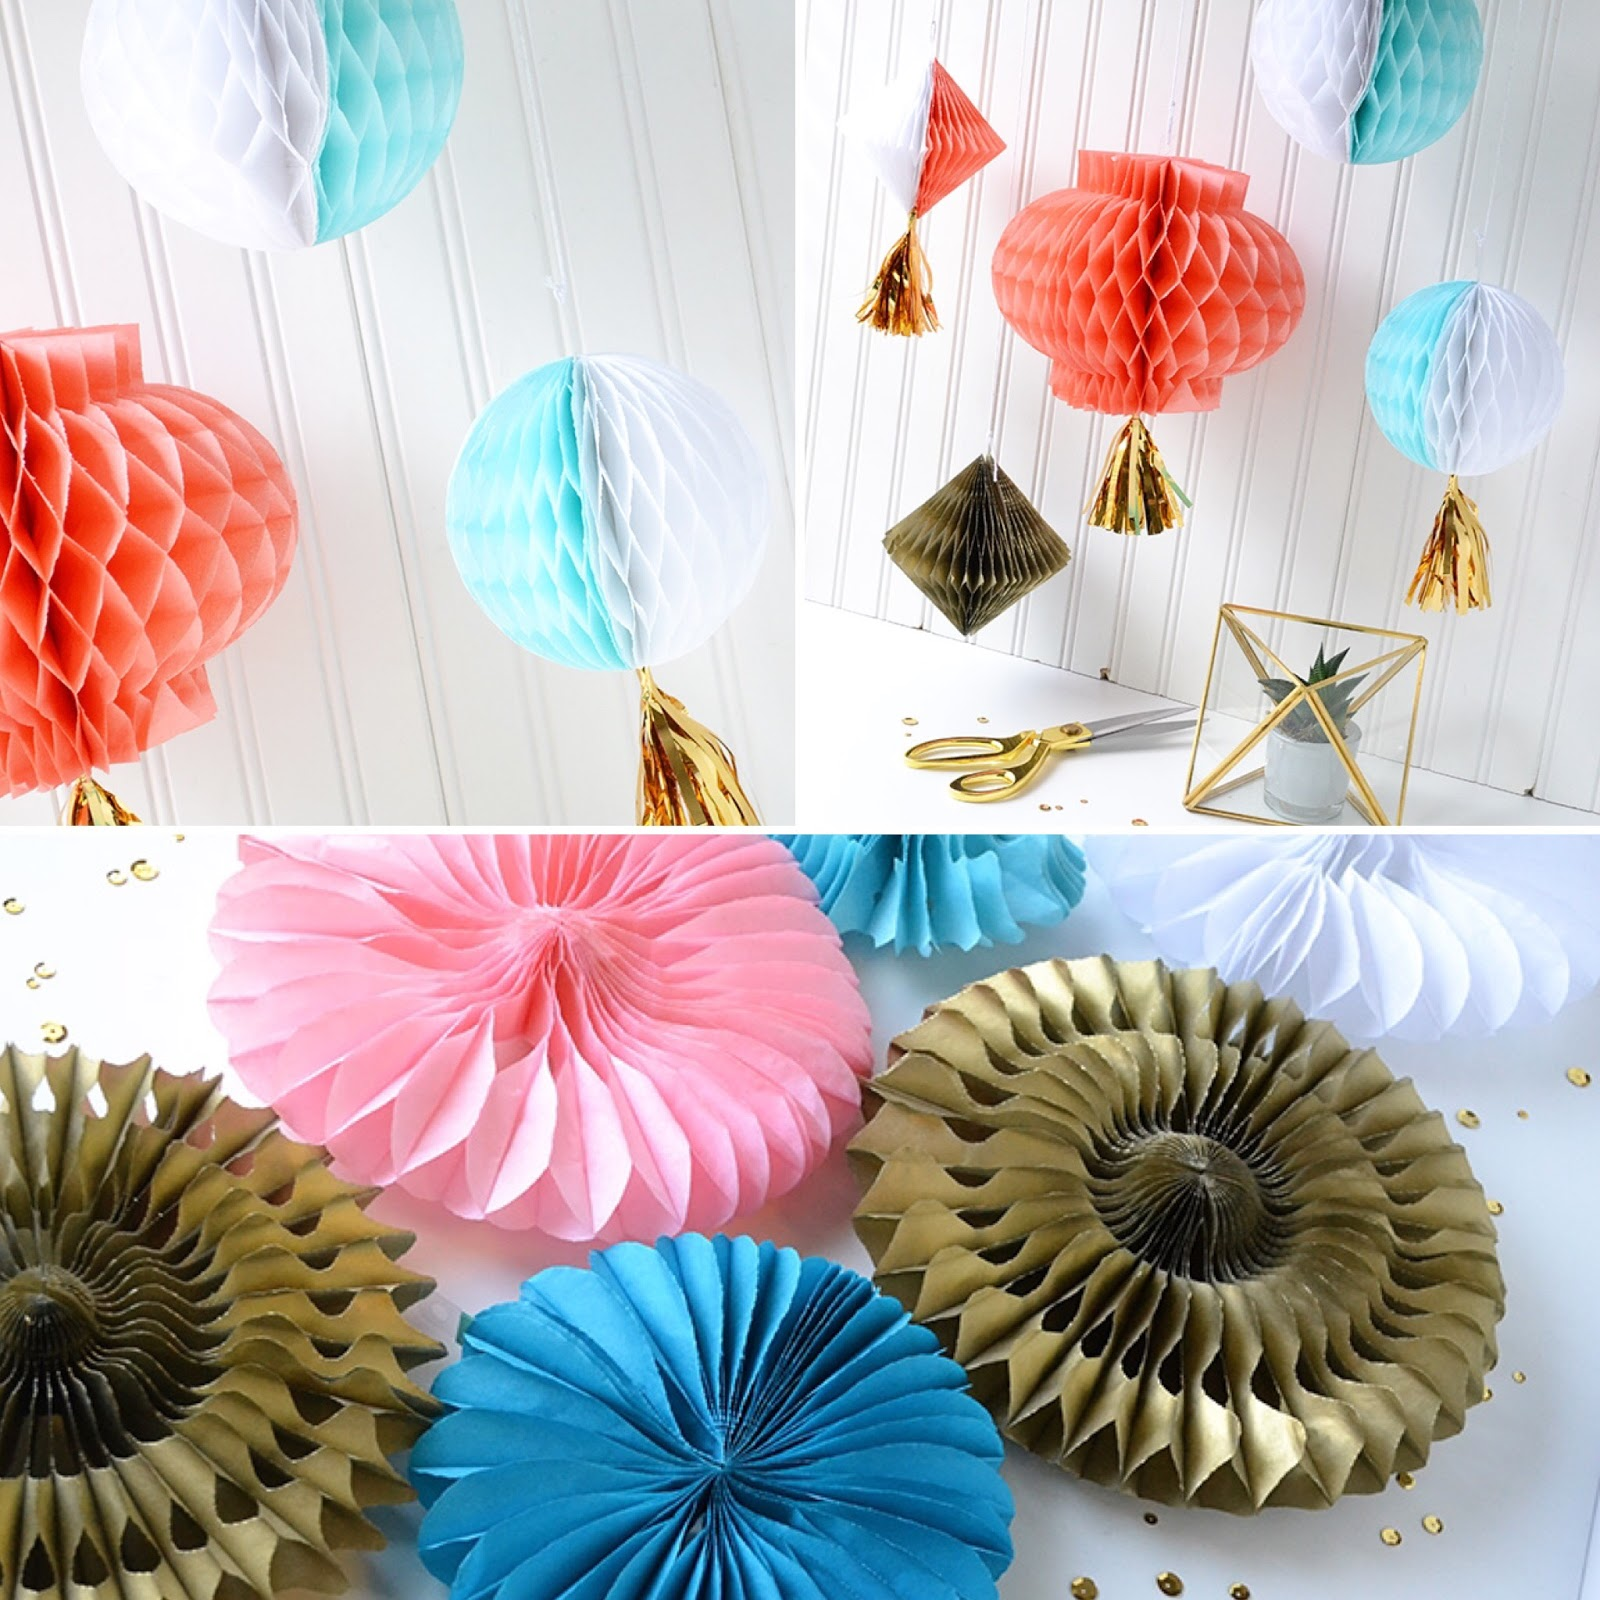 aly dosdall: honeycomb paper party decorations